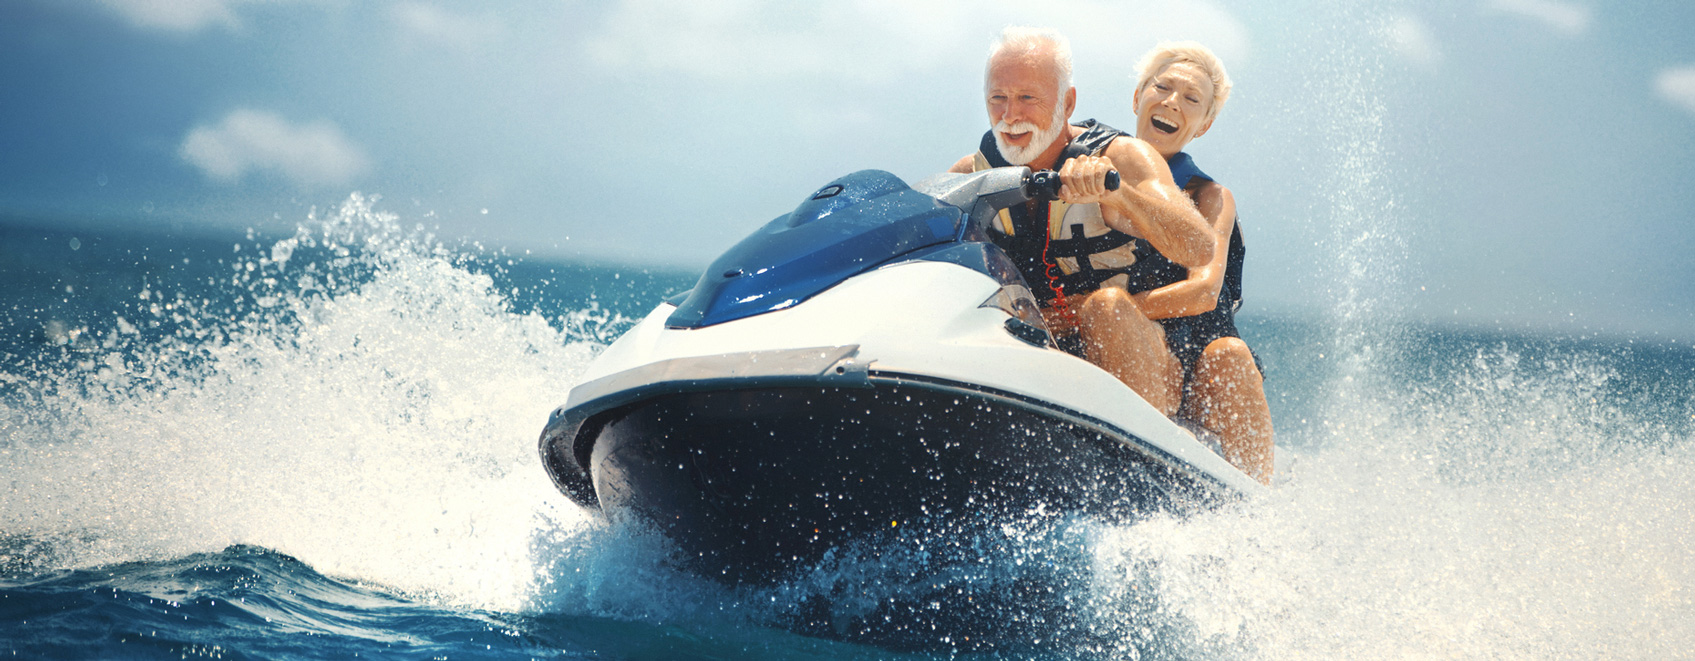 Two people riding on a watercraft enjoying themselves.